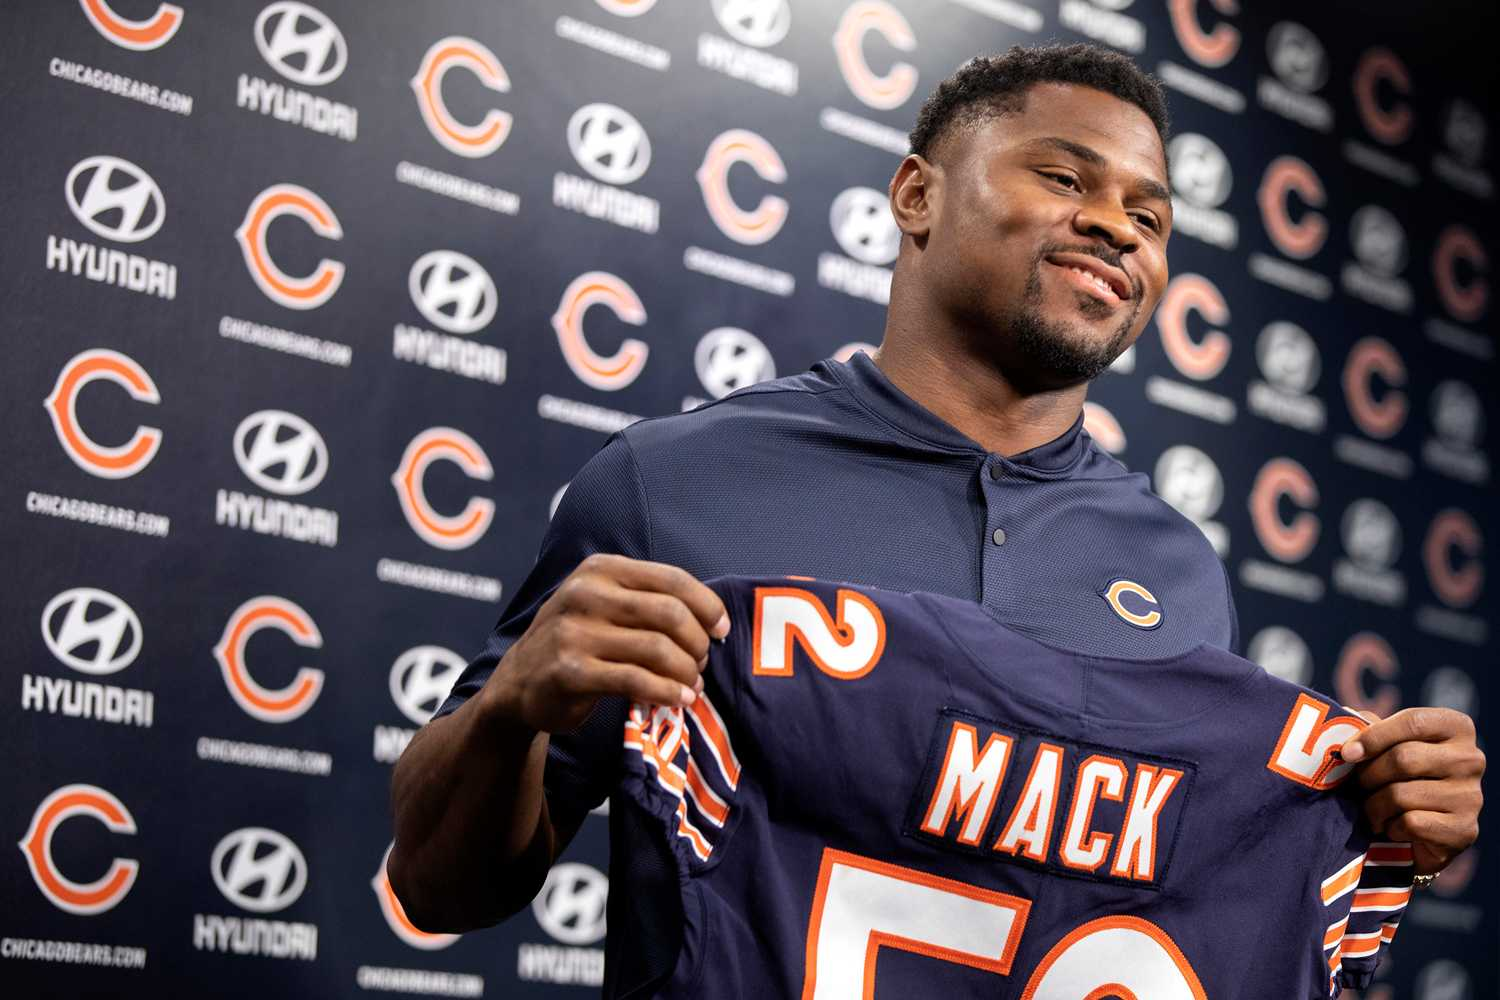 New Chicago Bears pass rusher Khalil Mack holds up his new team jersey during a press conference on Sunday, Sept. 2, at the PNC Center at Halas Hall in Lake Forest, Illinois.  (Erin Hooley/Chicago Tribune/TNS)